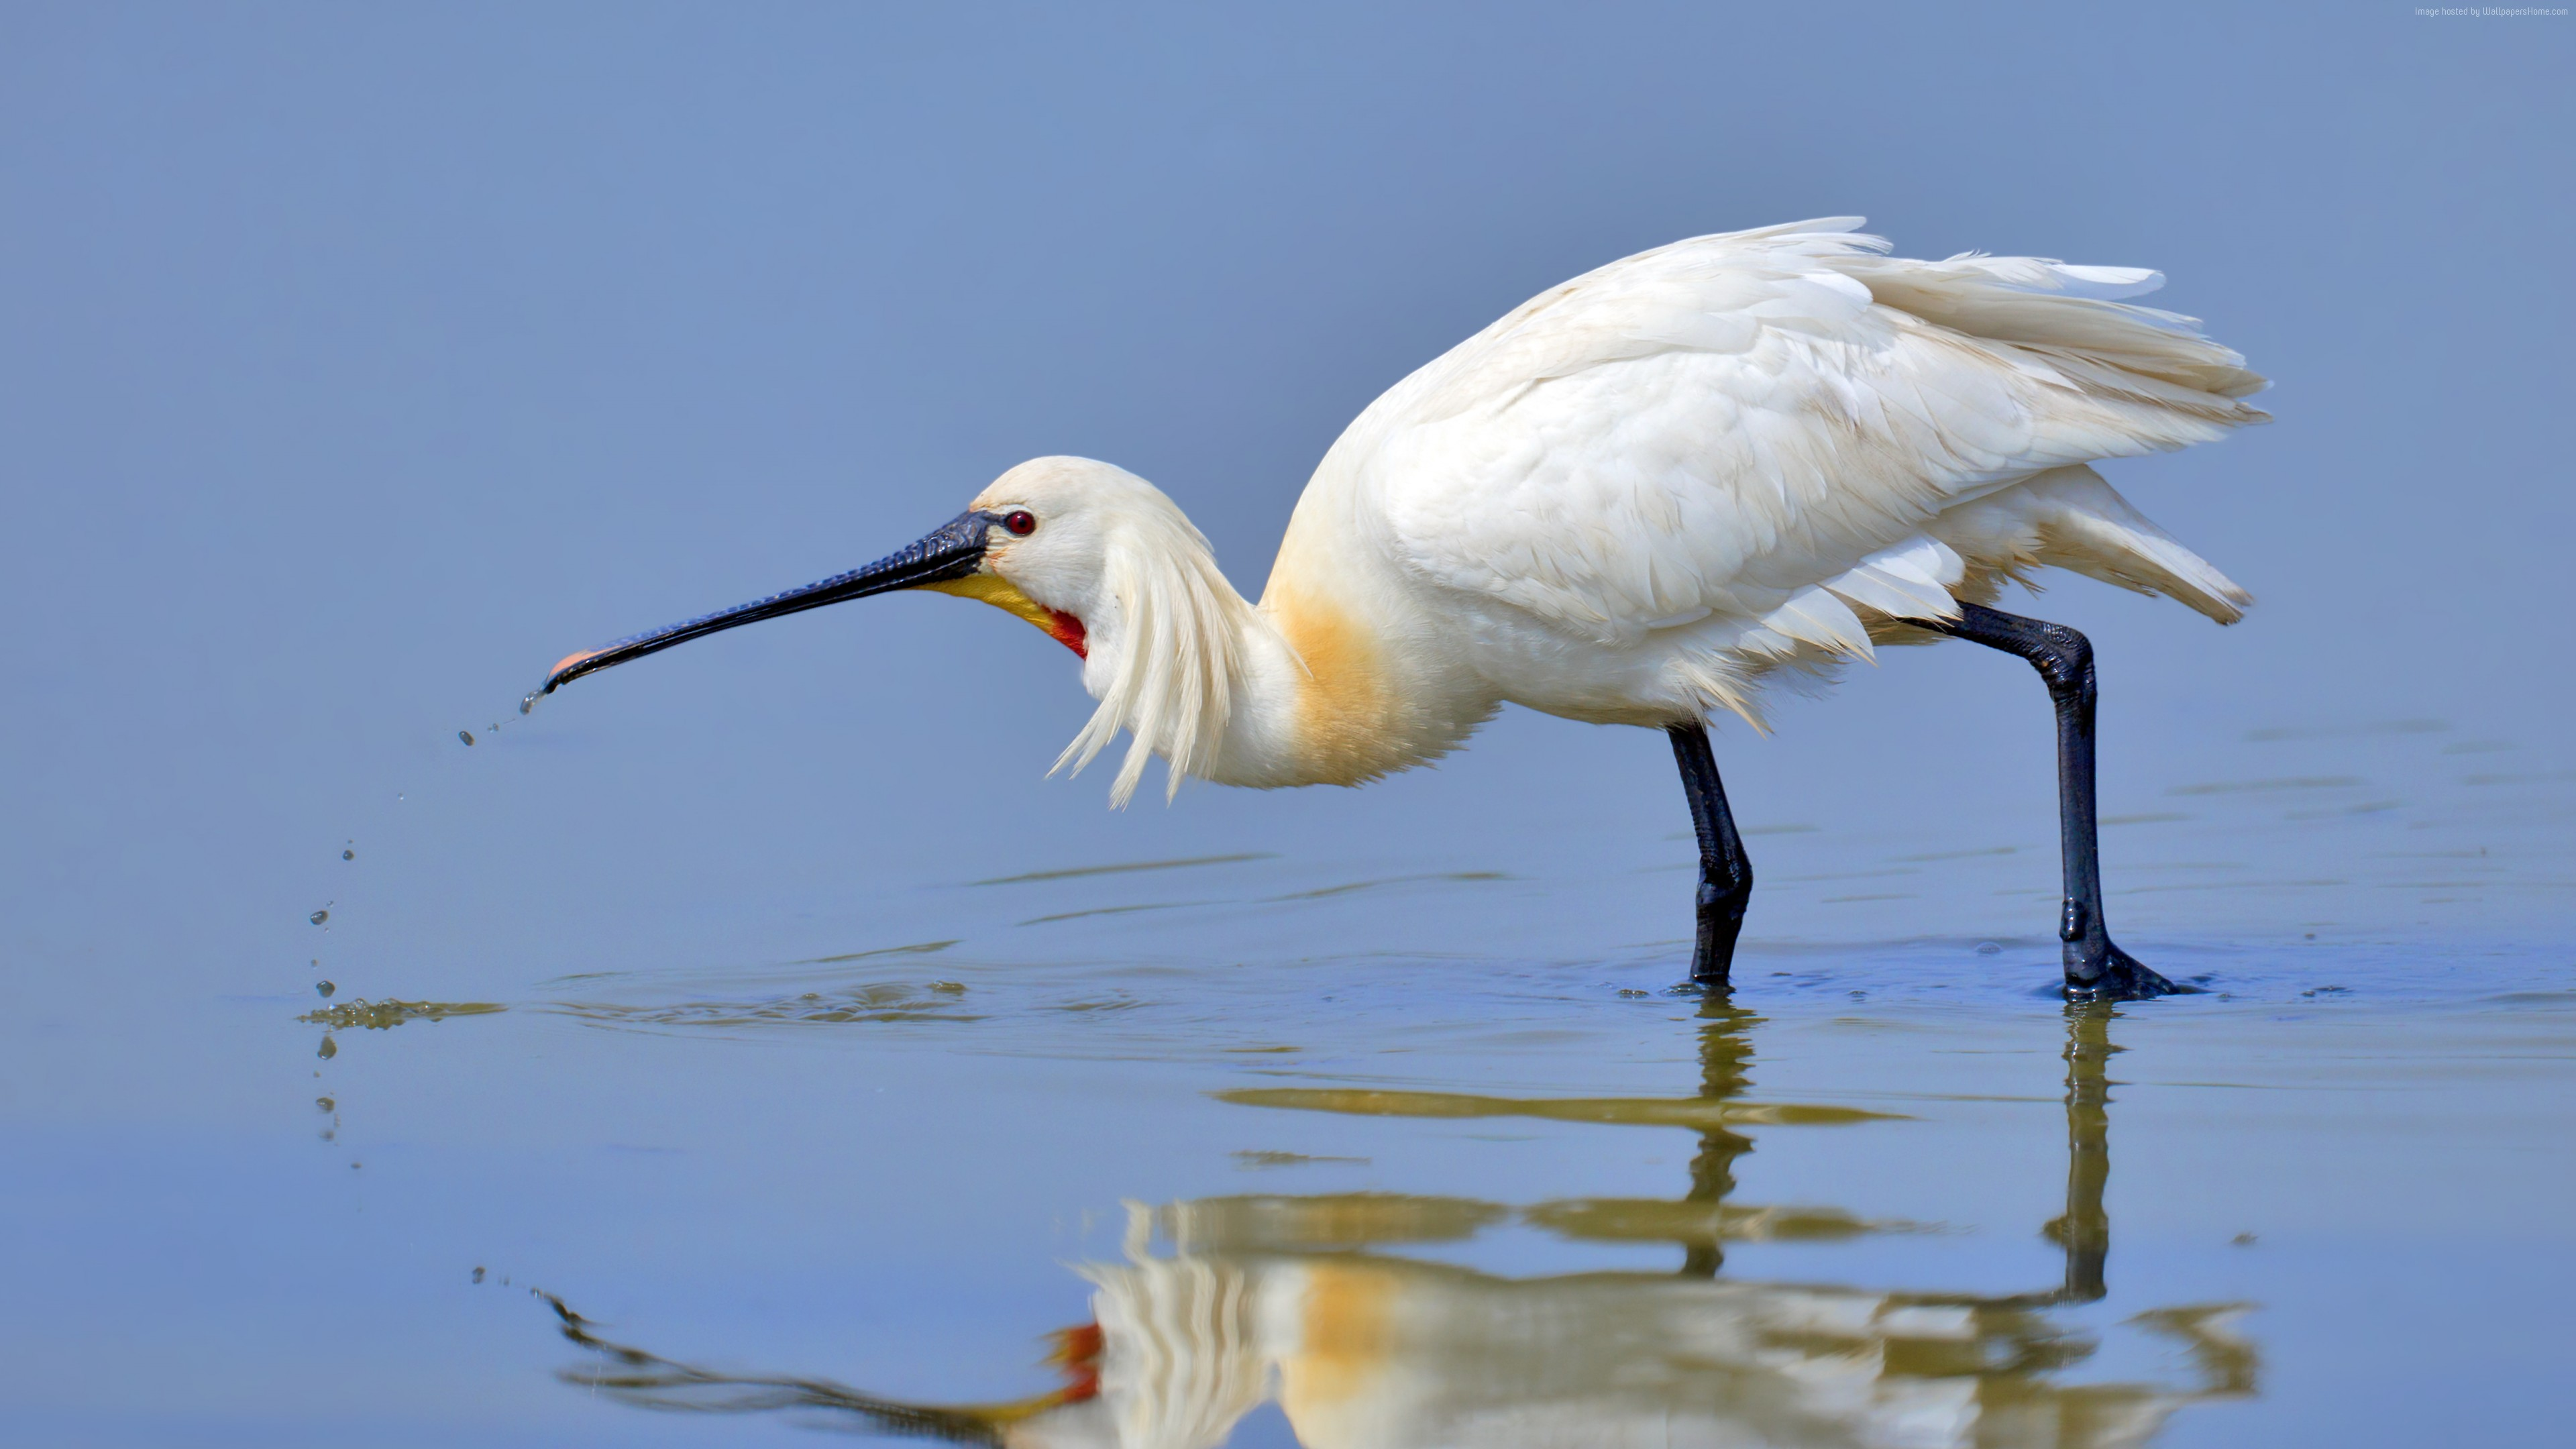 Wallpaper Eurasian spoonbill, 5k, 4k wallpaper, Japan, North Africa, bird, white, animal, nature, water, lake, reflection, Animals